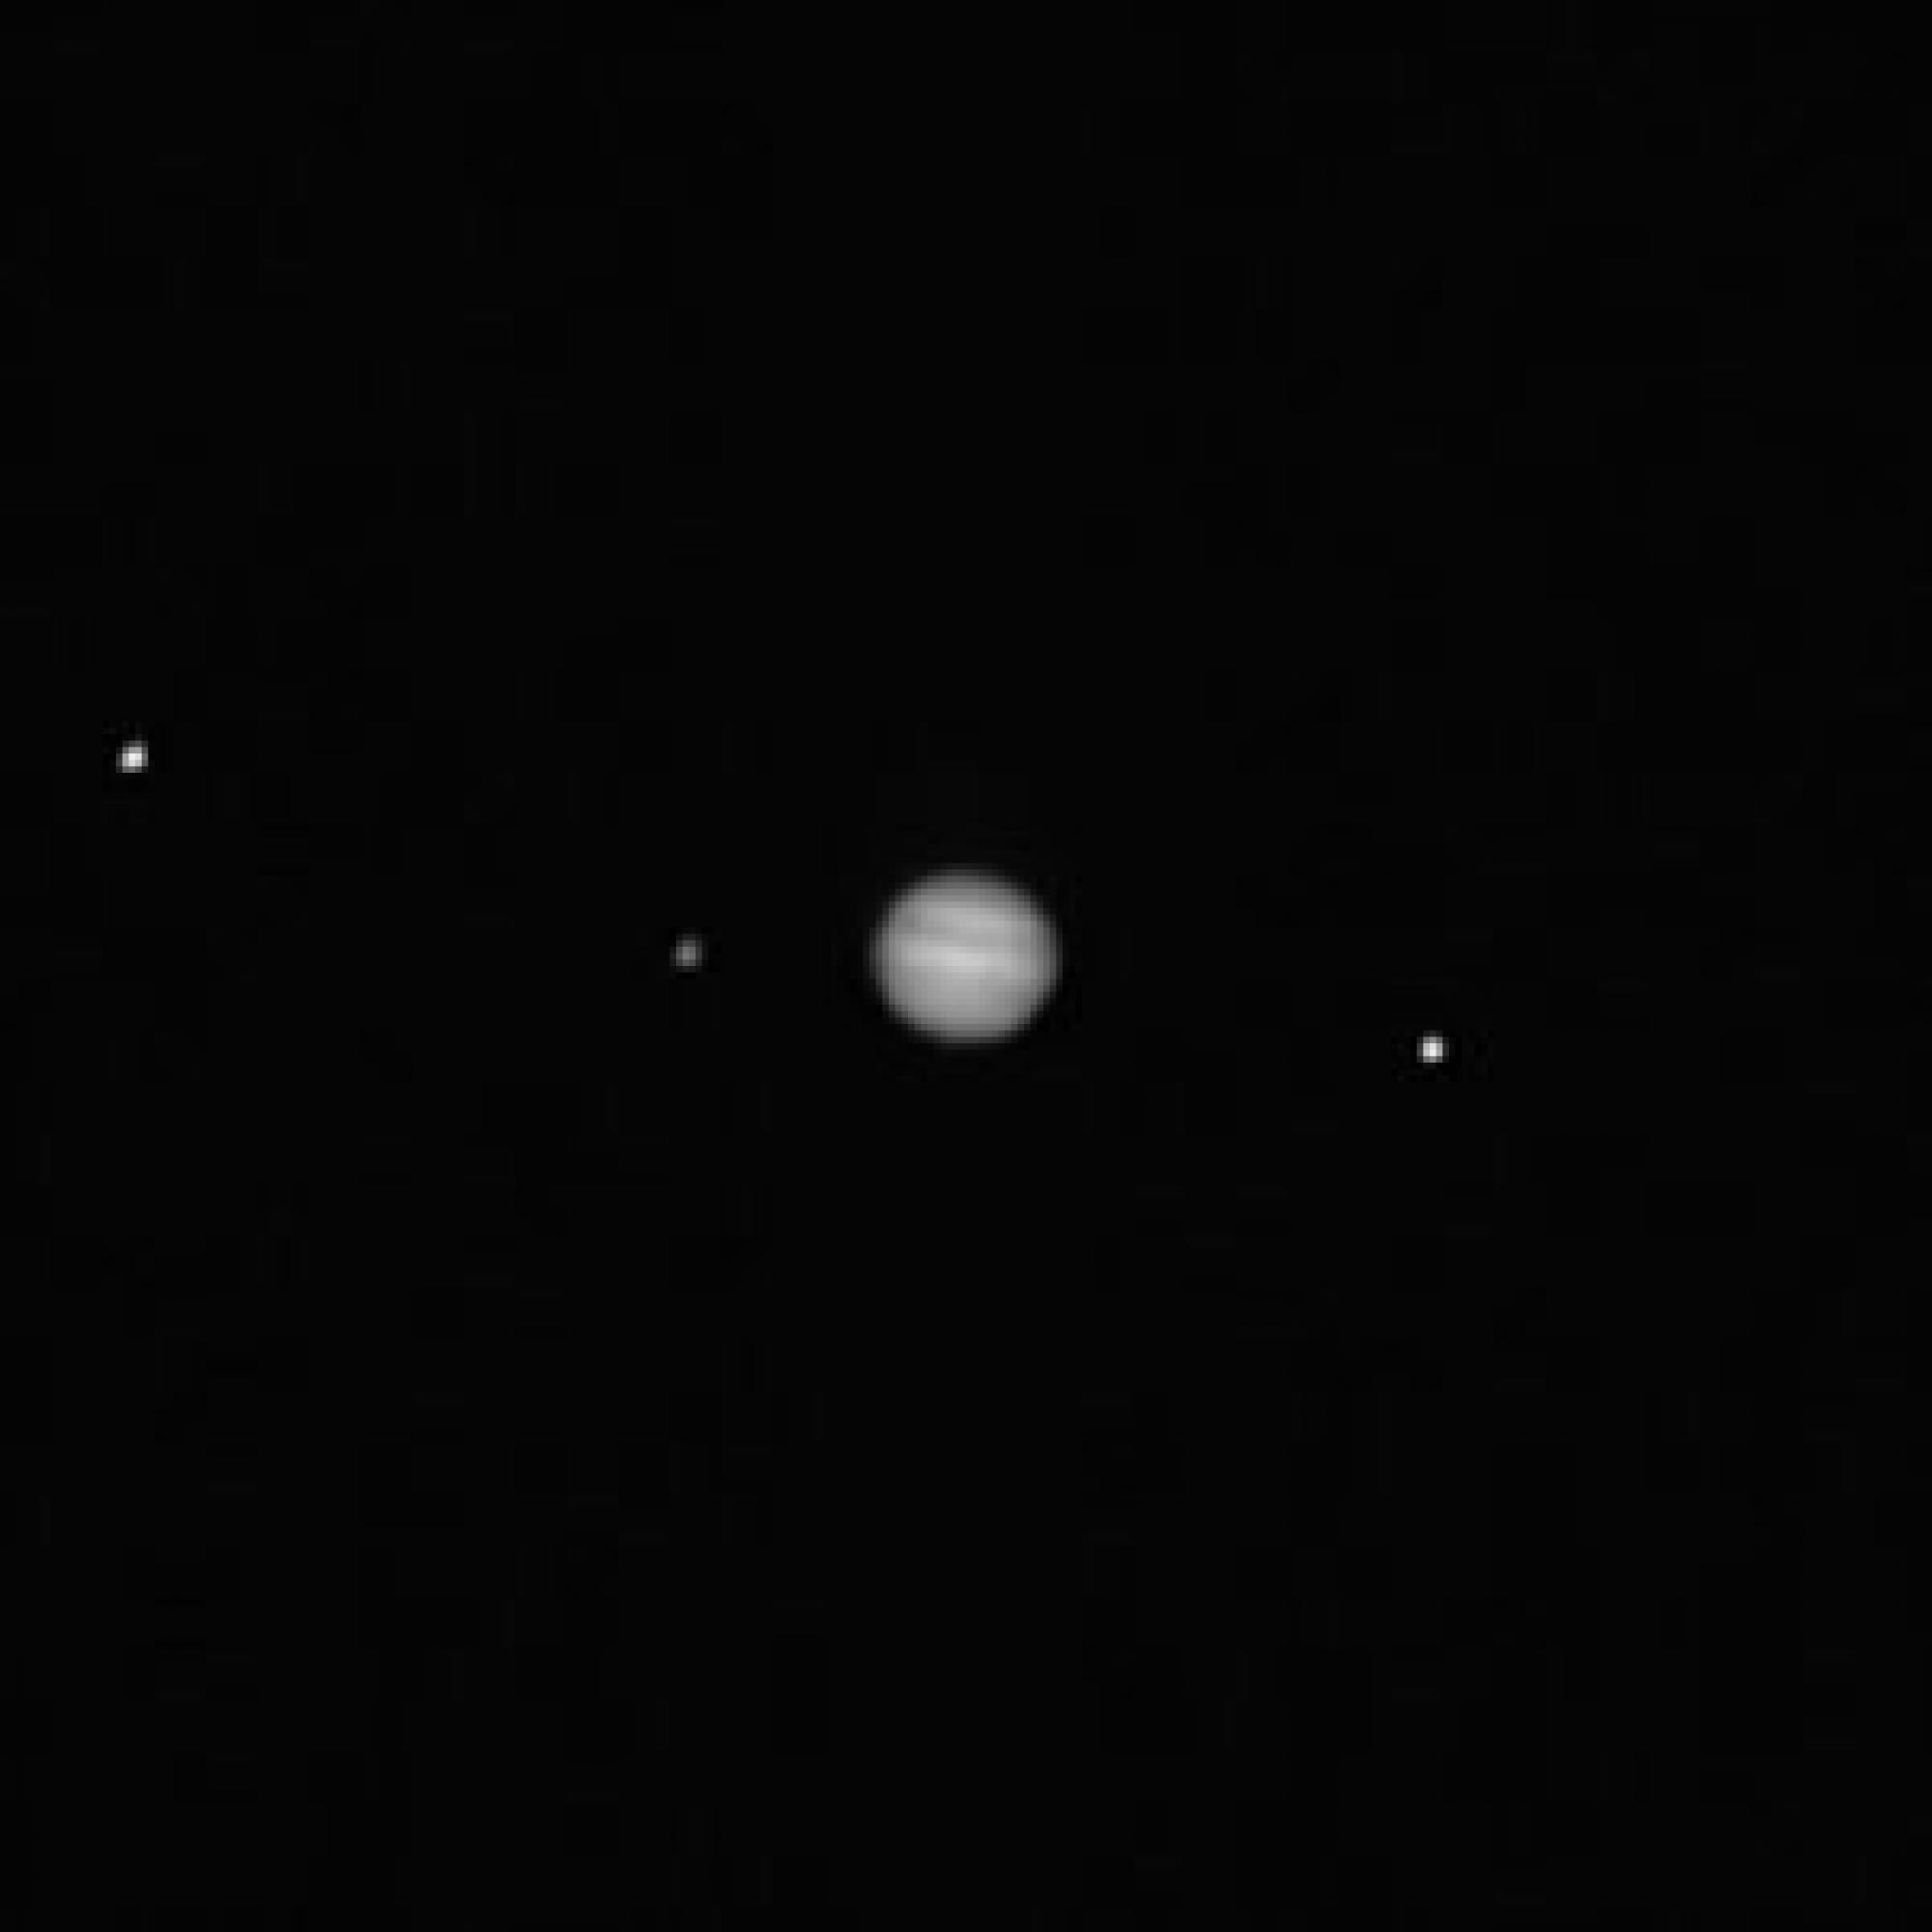 The PolyCam imager on-board OSIRIS-REx captured this image of Jupiter  and three of its moons, Callisto , Io, and Ganymede. The image was taken on Feb. 12, when the spacecraft was 76 million miles  from Earth and 418 million miles  from Jupiter.